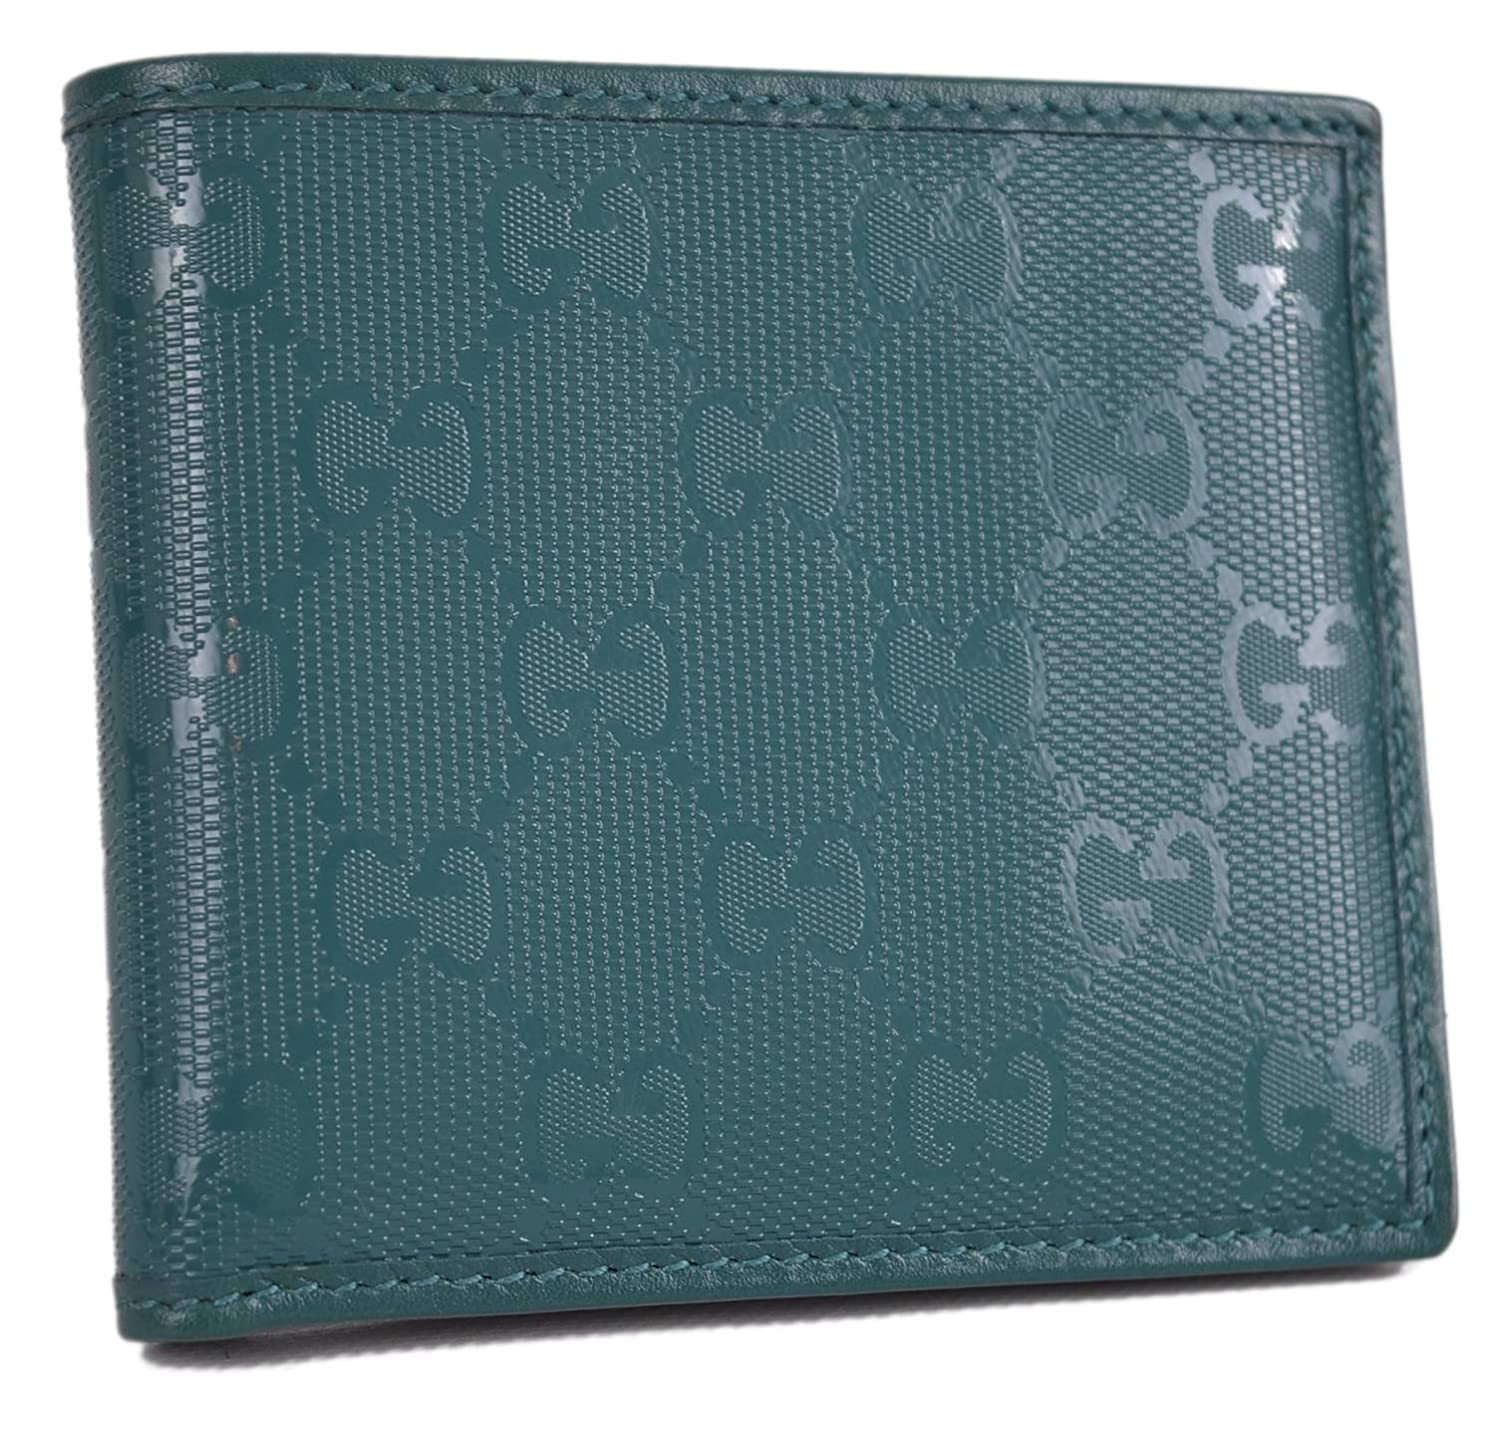 202b61596ee192 Amazon.com: Gucci Men's Teal Imprime GG Guccissima Bifold Wallet 145754:  Clothing